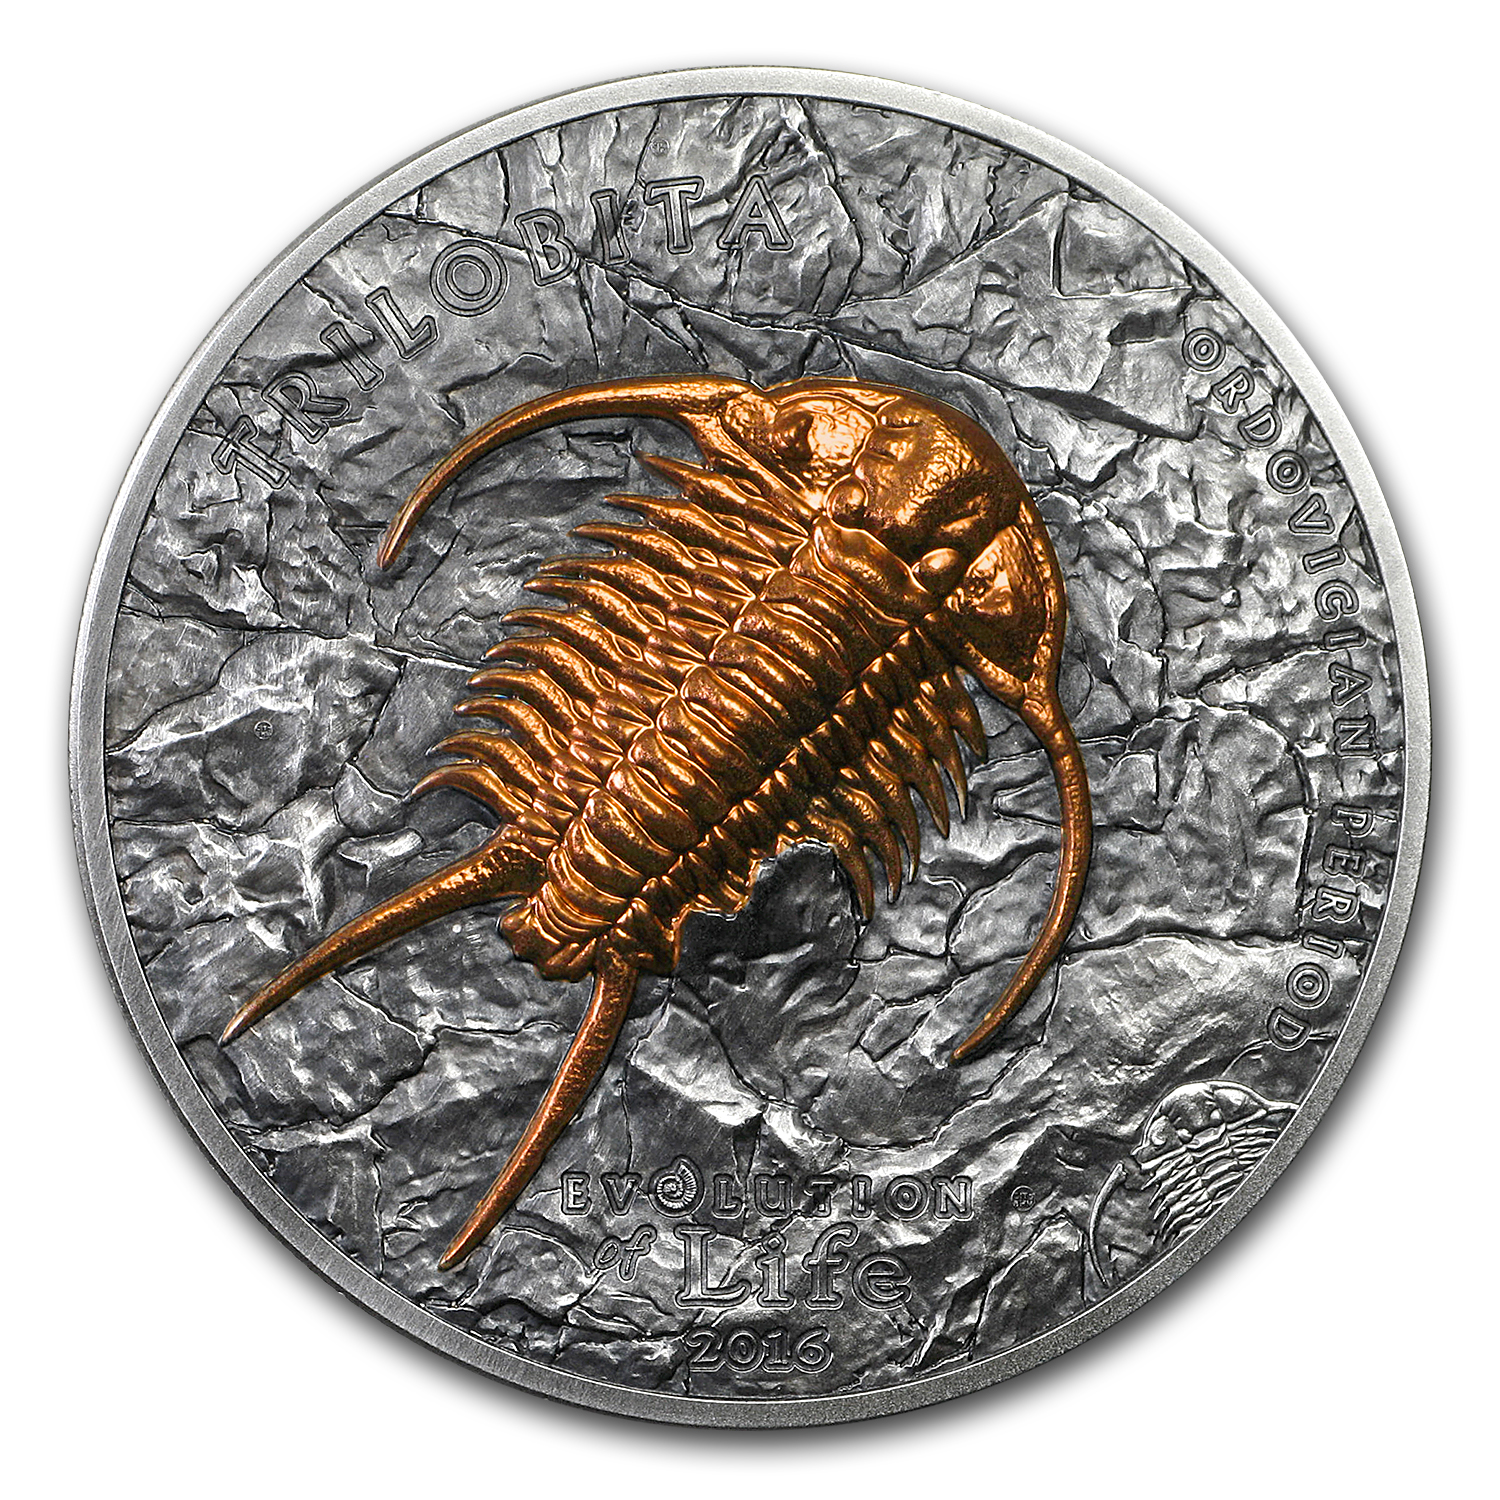 2016 Mongolia 1 oz Silver 500 Togrog Evolution of Life Trilobite